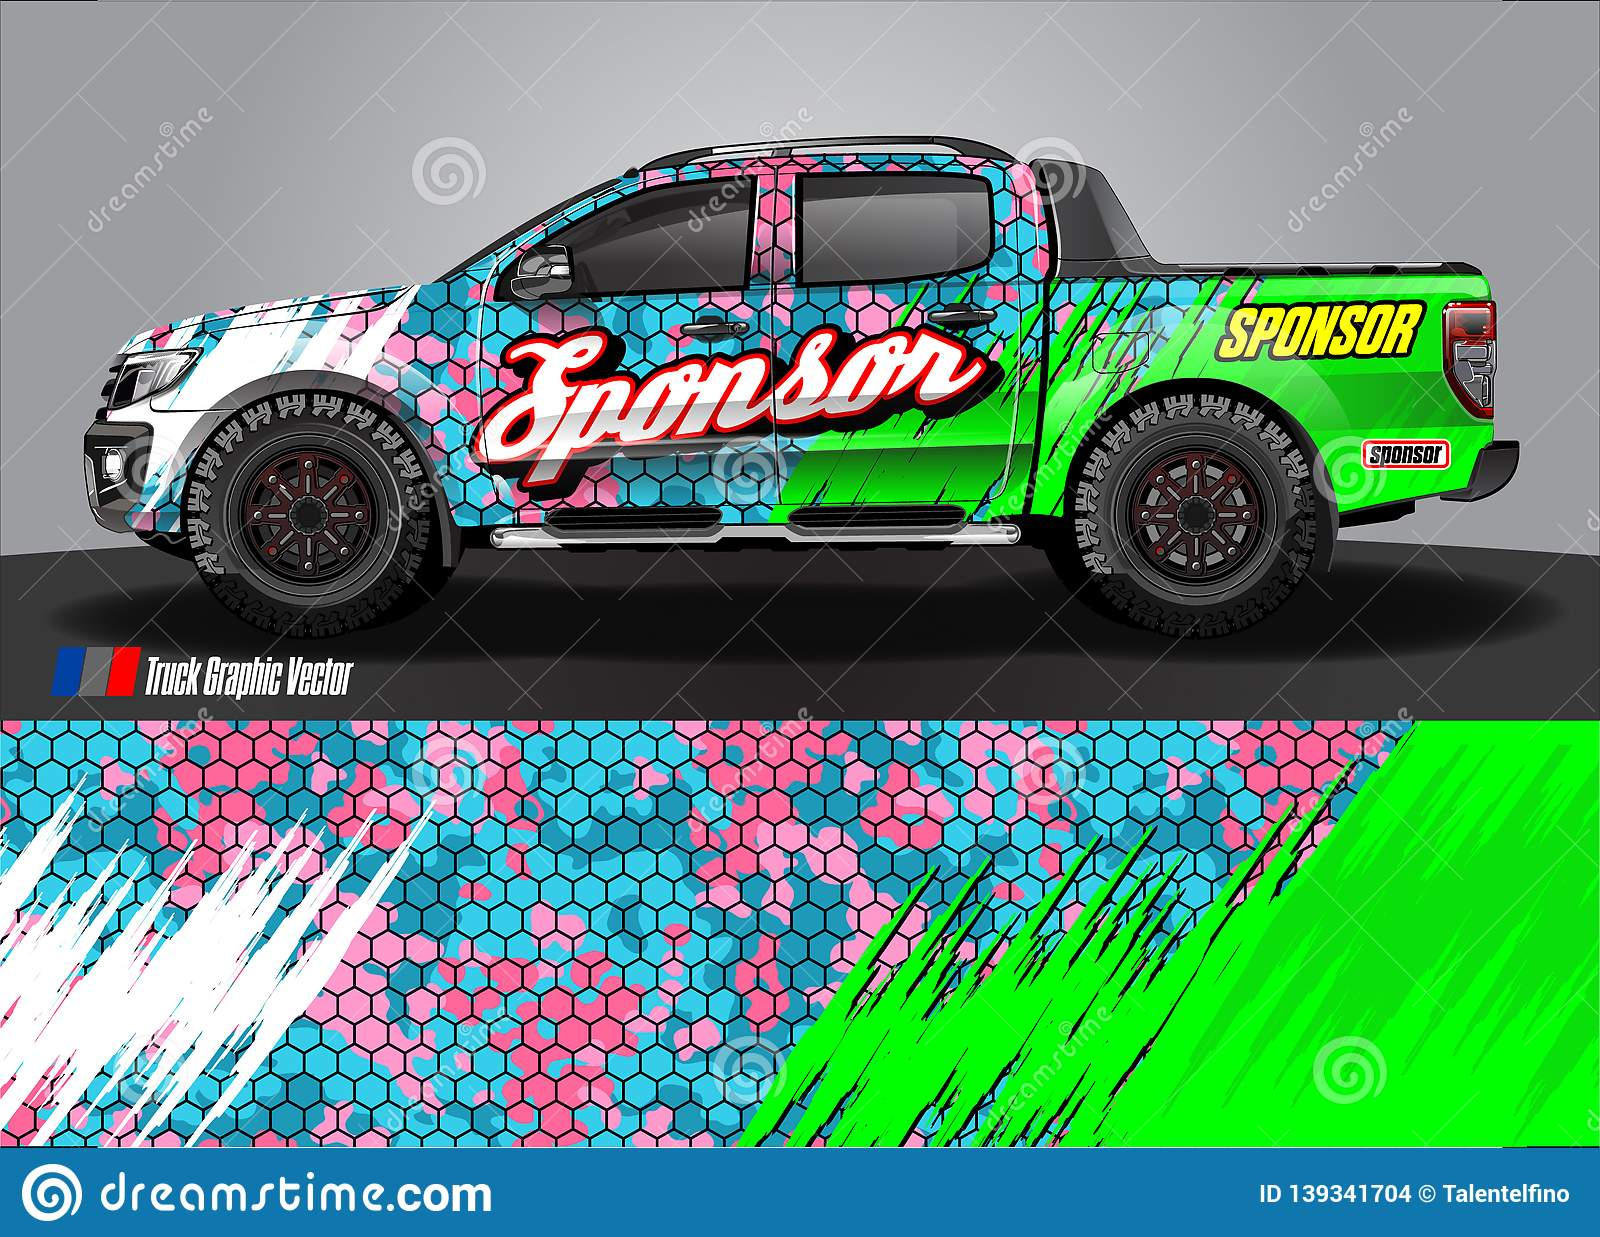 Pickup Truck Livery Graphic Abstract Grunge Background Design For Vehicle Vinyl Wrap And Car Branding Stock Illustration Illustration Of Camouflage Branding 139341704